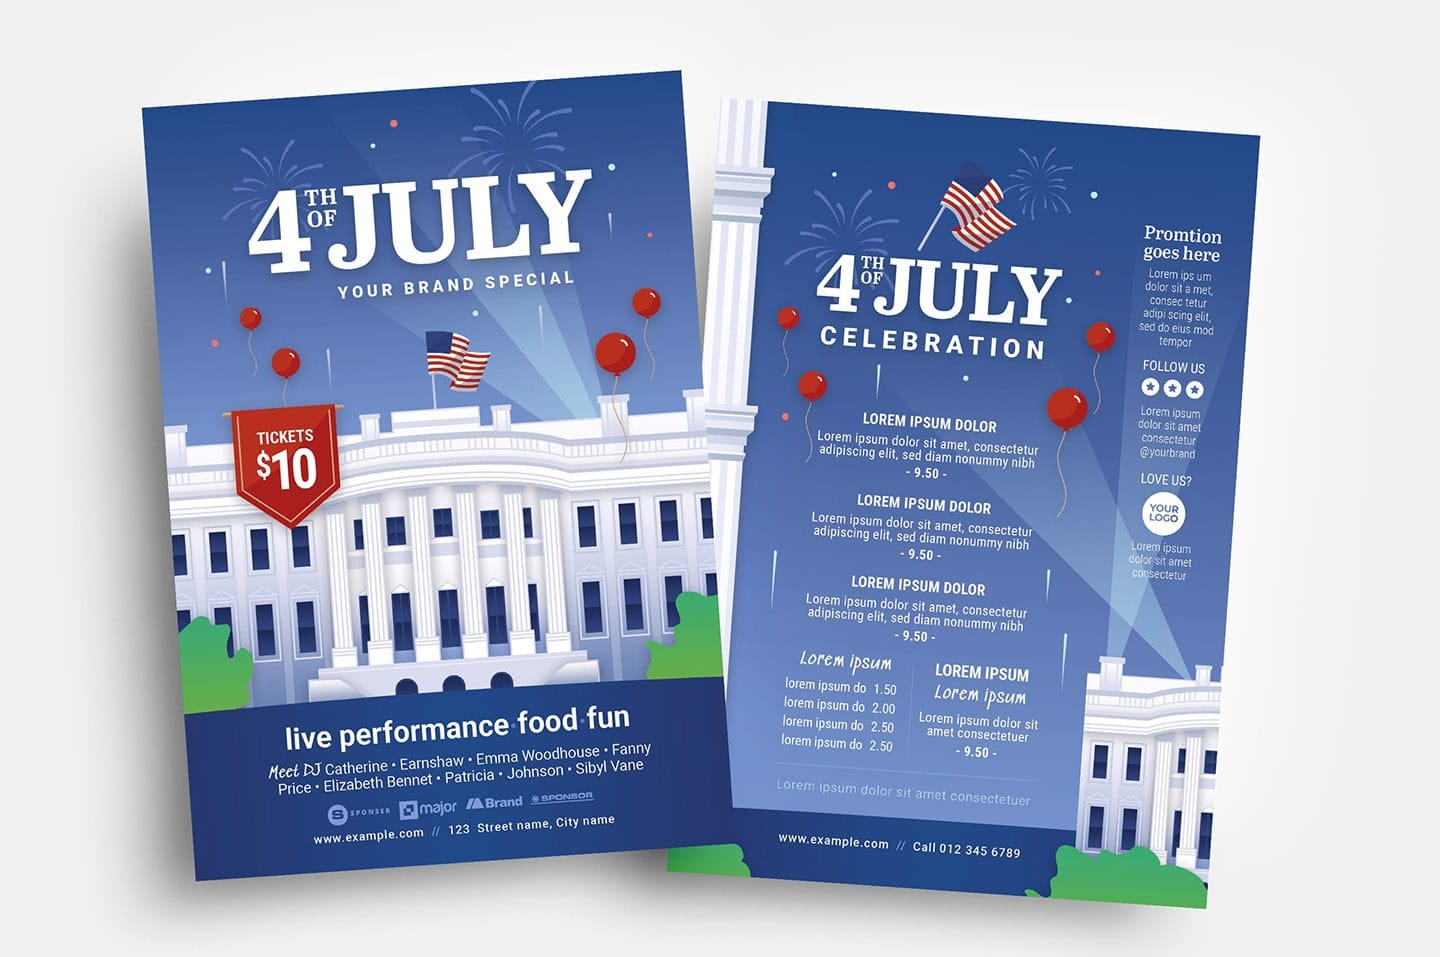 Fourth July Flyer Template with White House Illustration